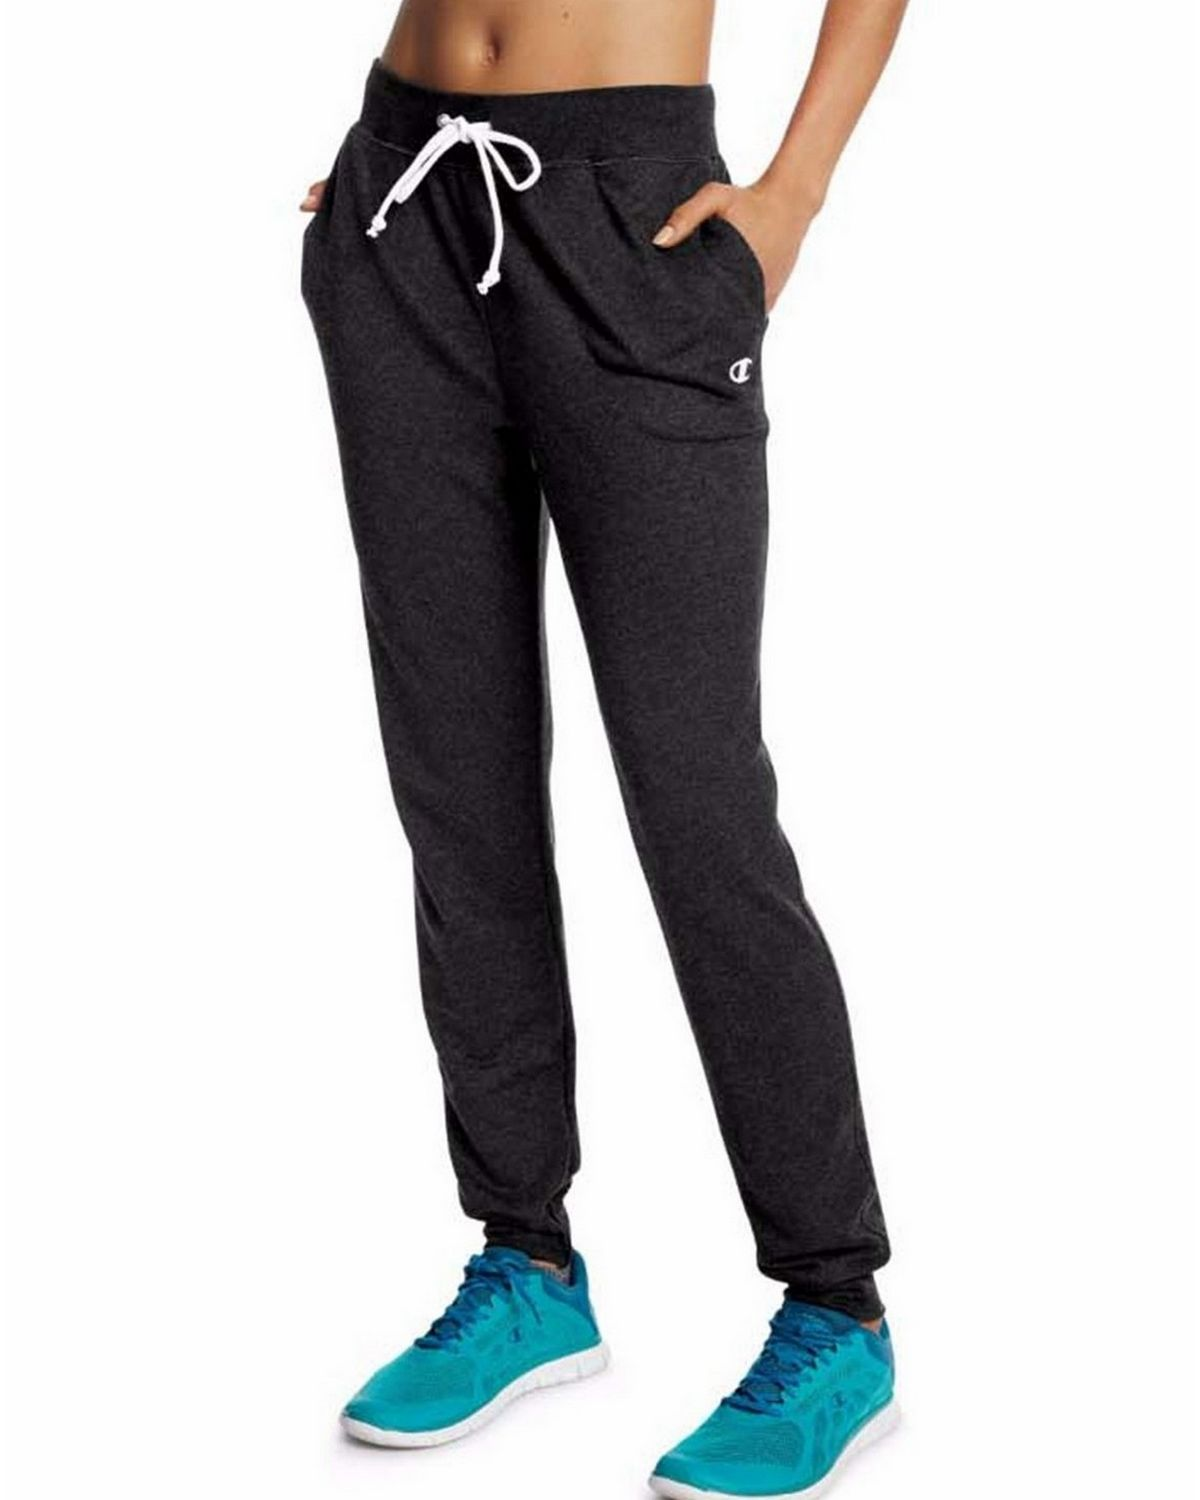 Champion M0944 Womens French Jogger Pants - Black - L M0944